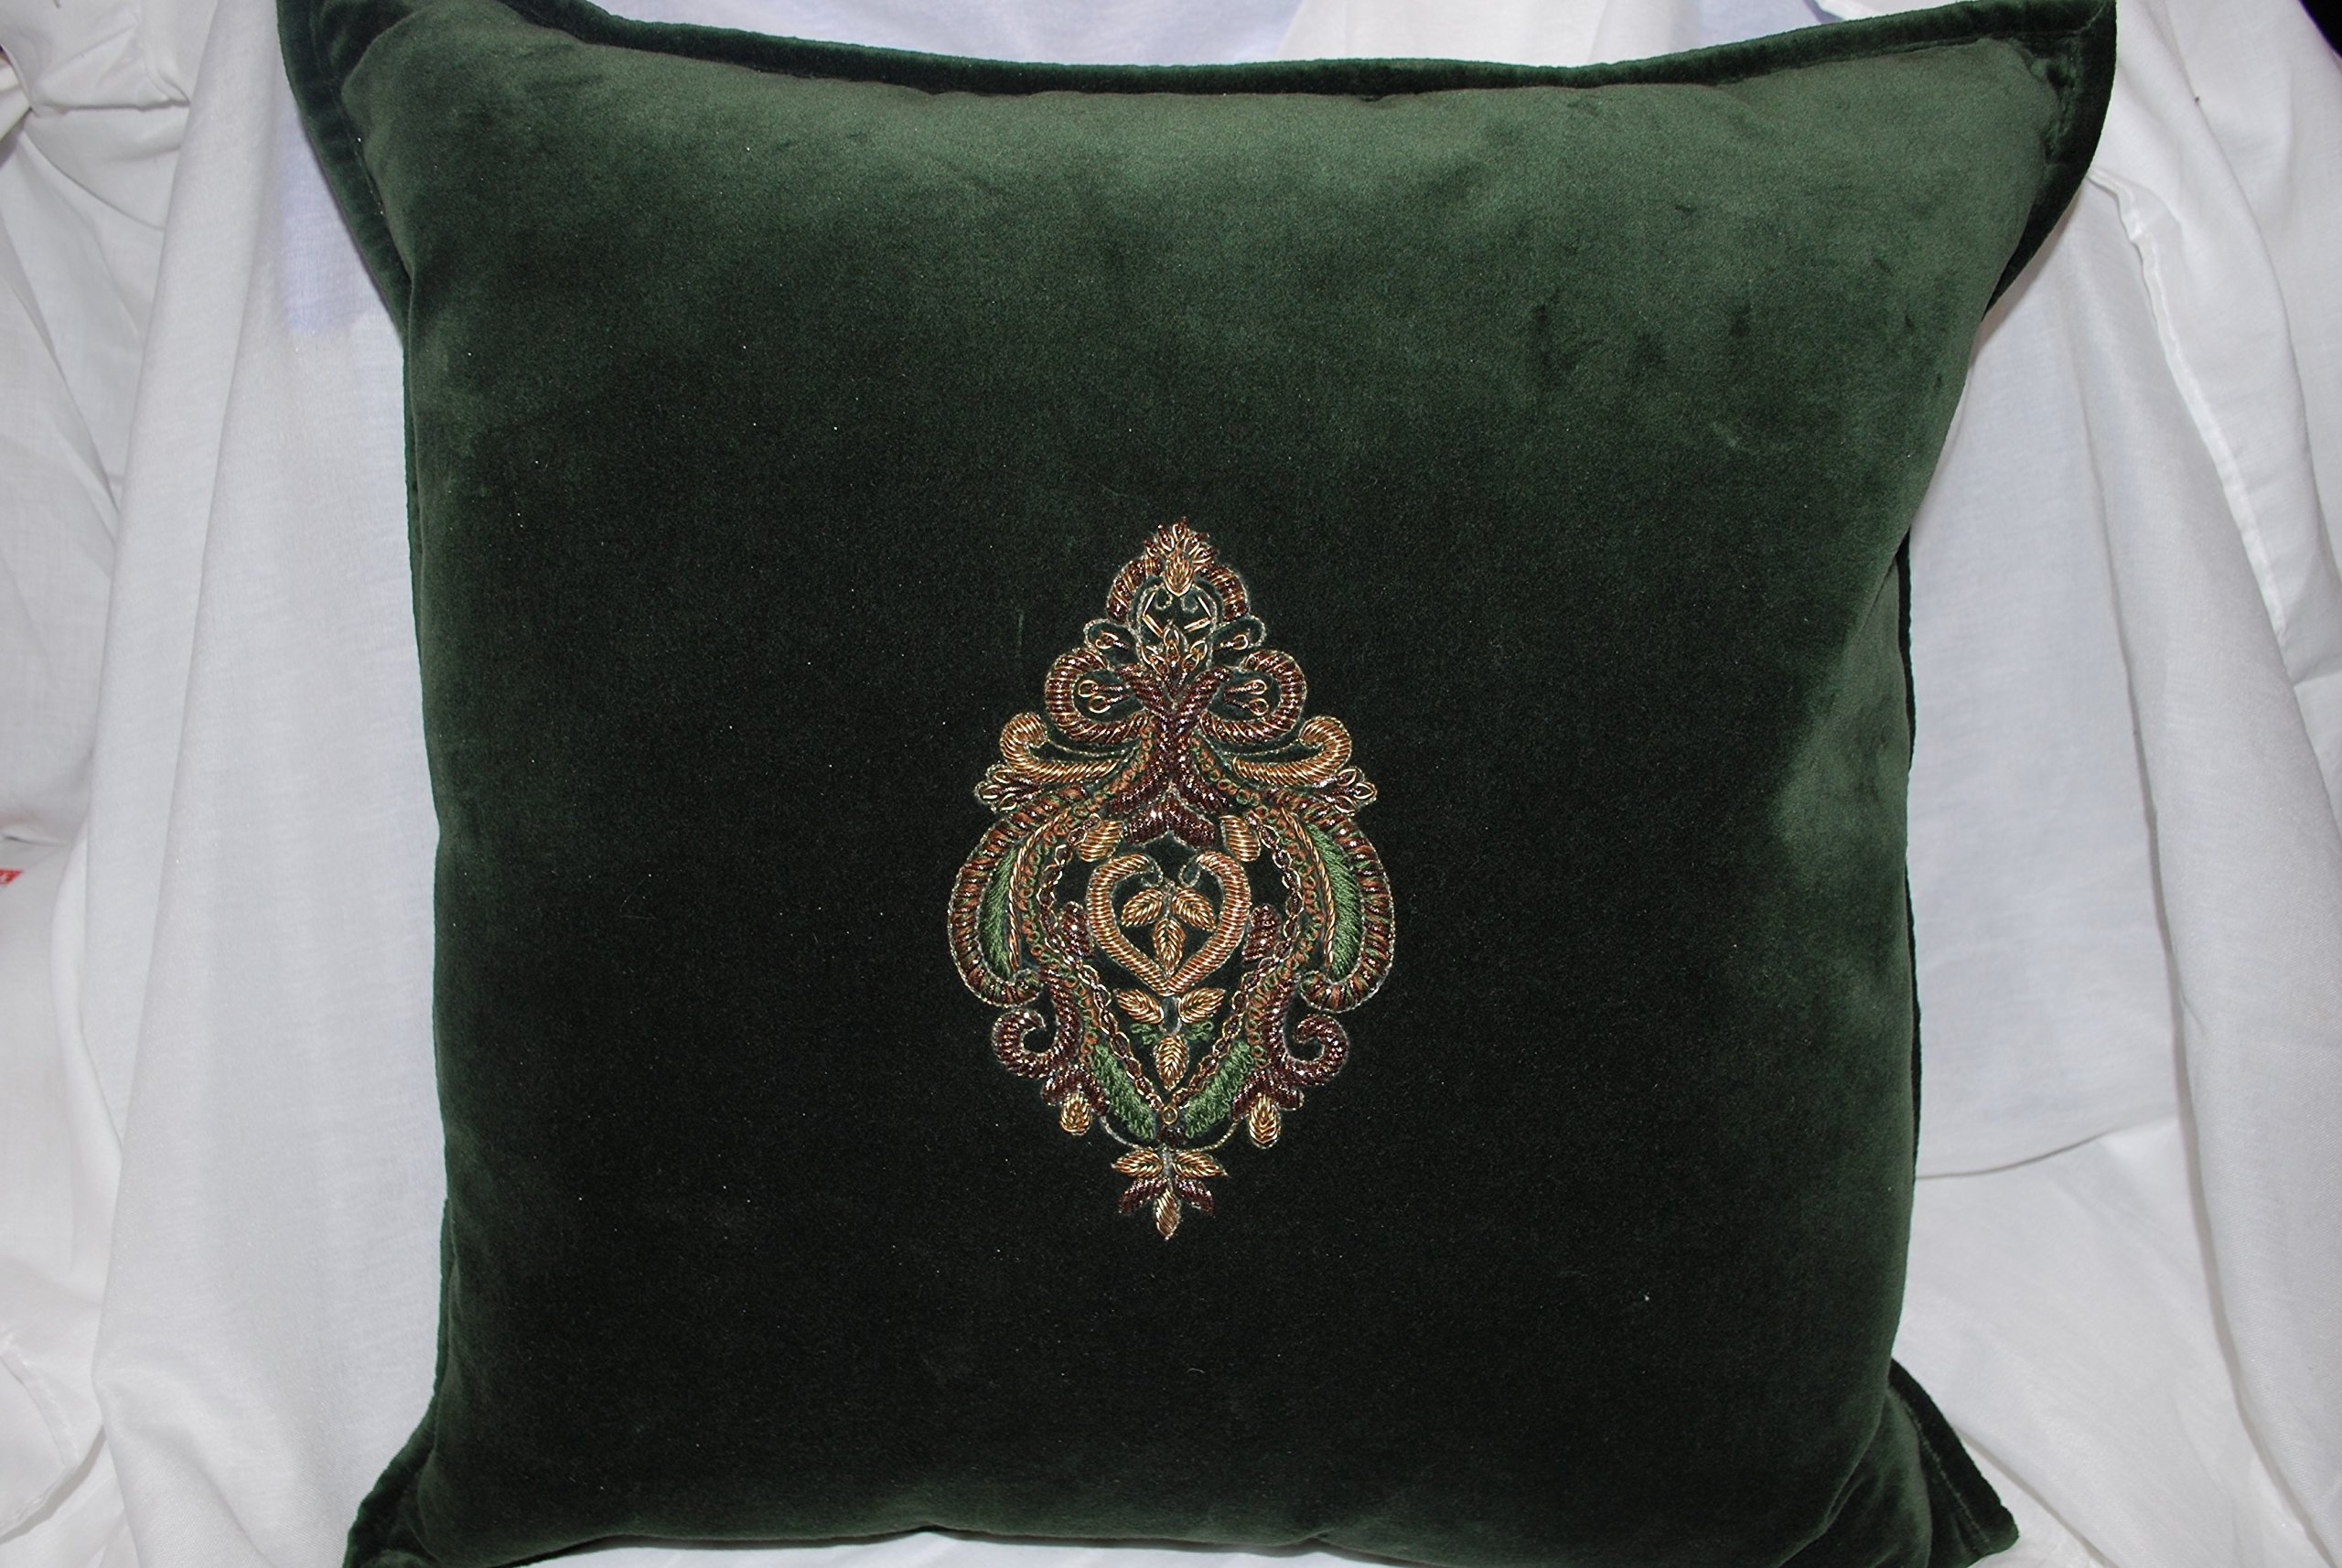 Ralph Lauren Bohemian Muse Bayfield Green Velvet Decorative Pillow with Gold Crest 18'' Square